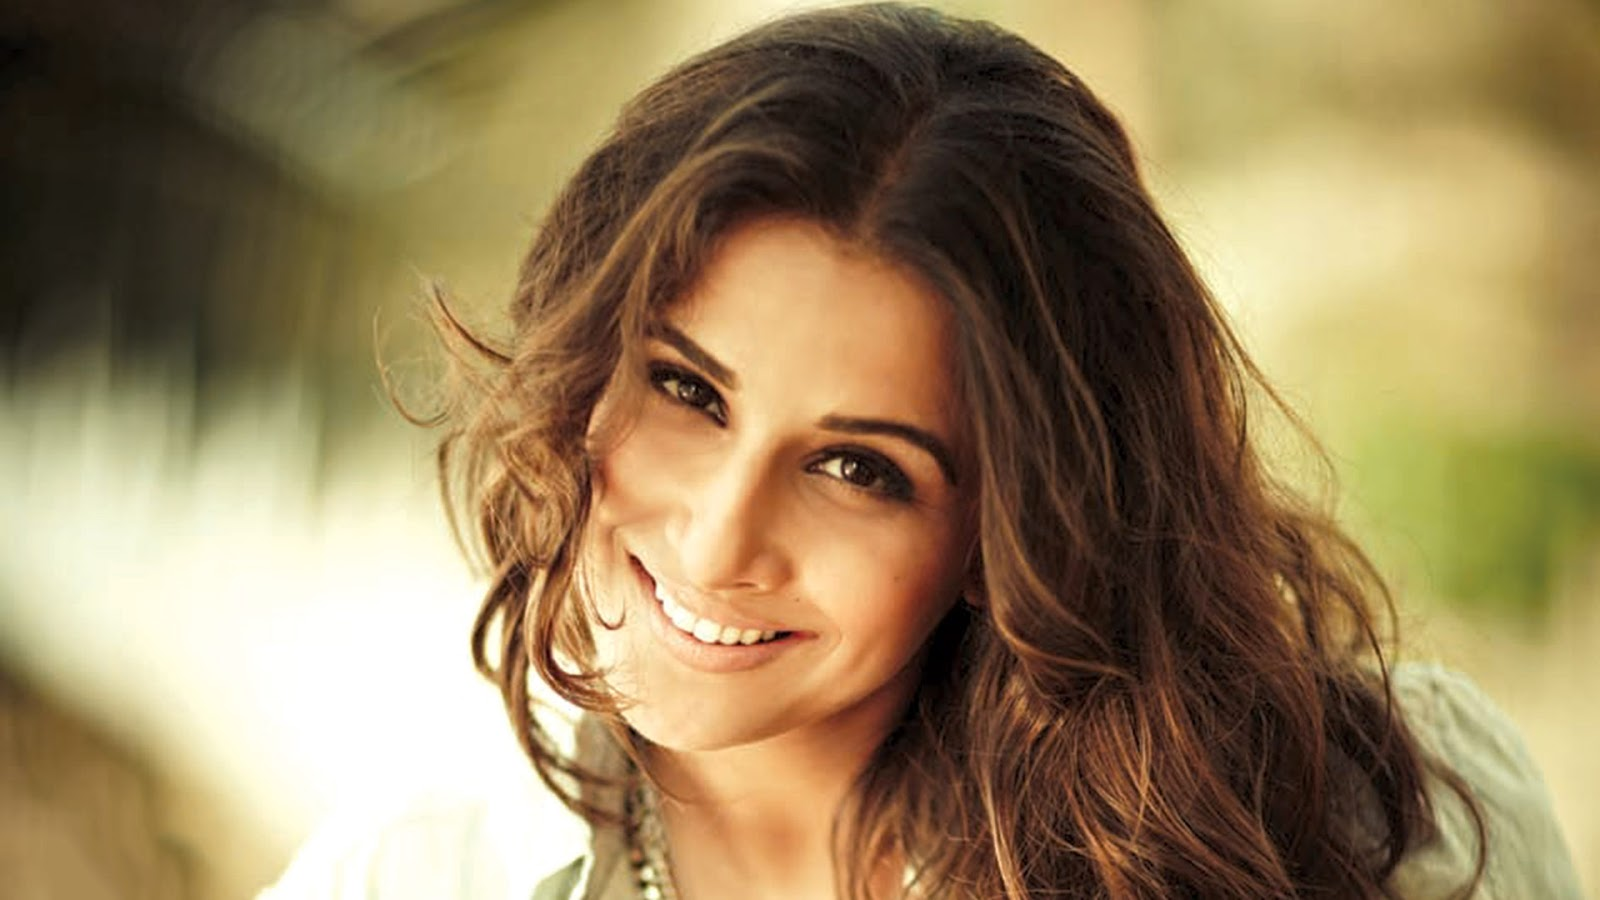 vidya balan wallpapers hd download free 1080p colorfullhdwallpapers